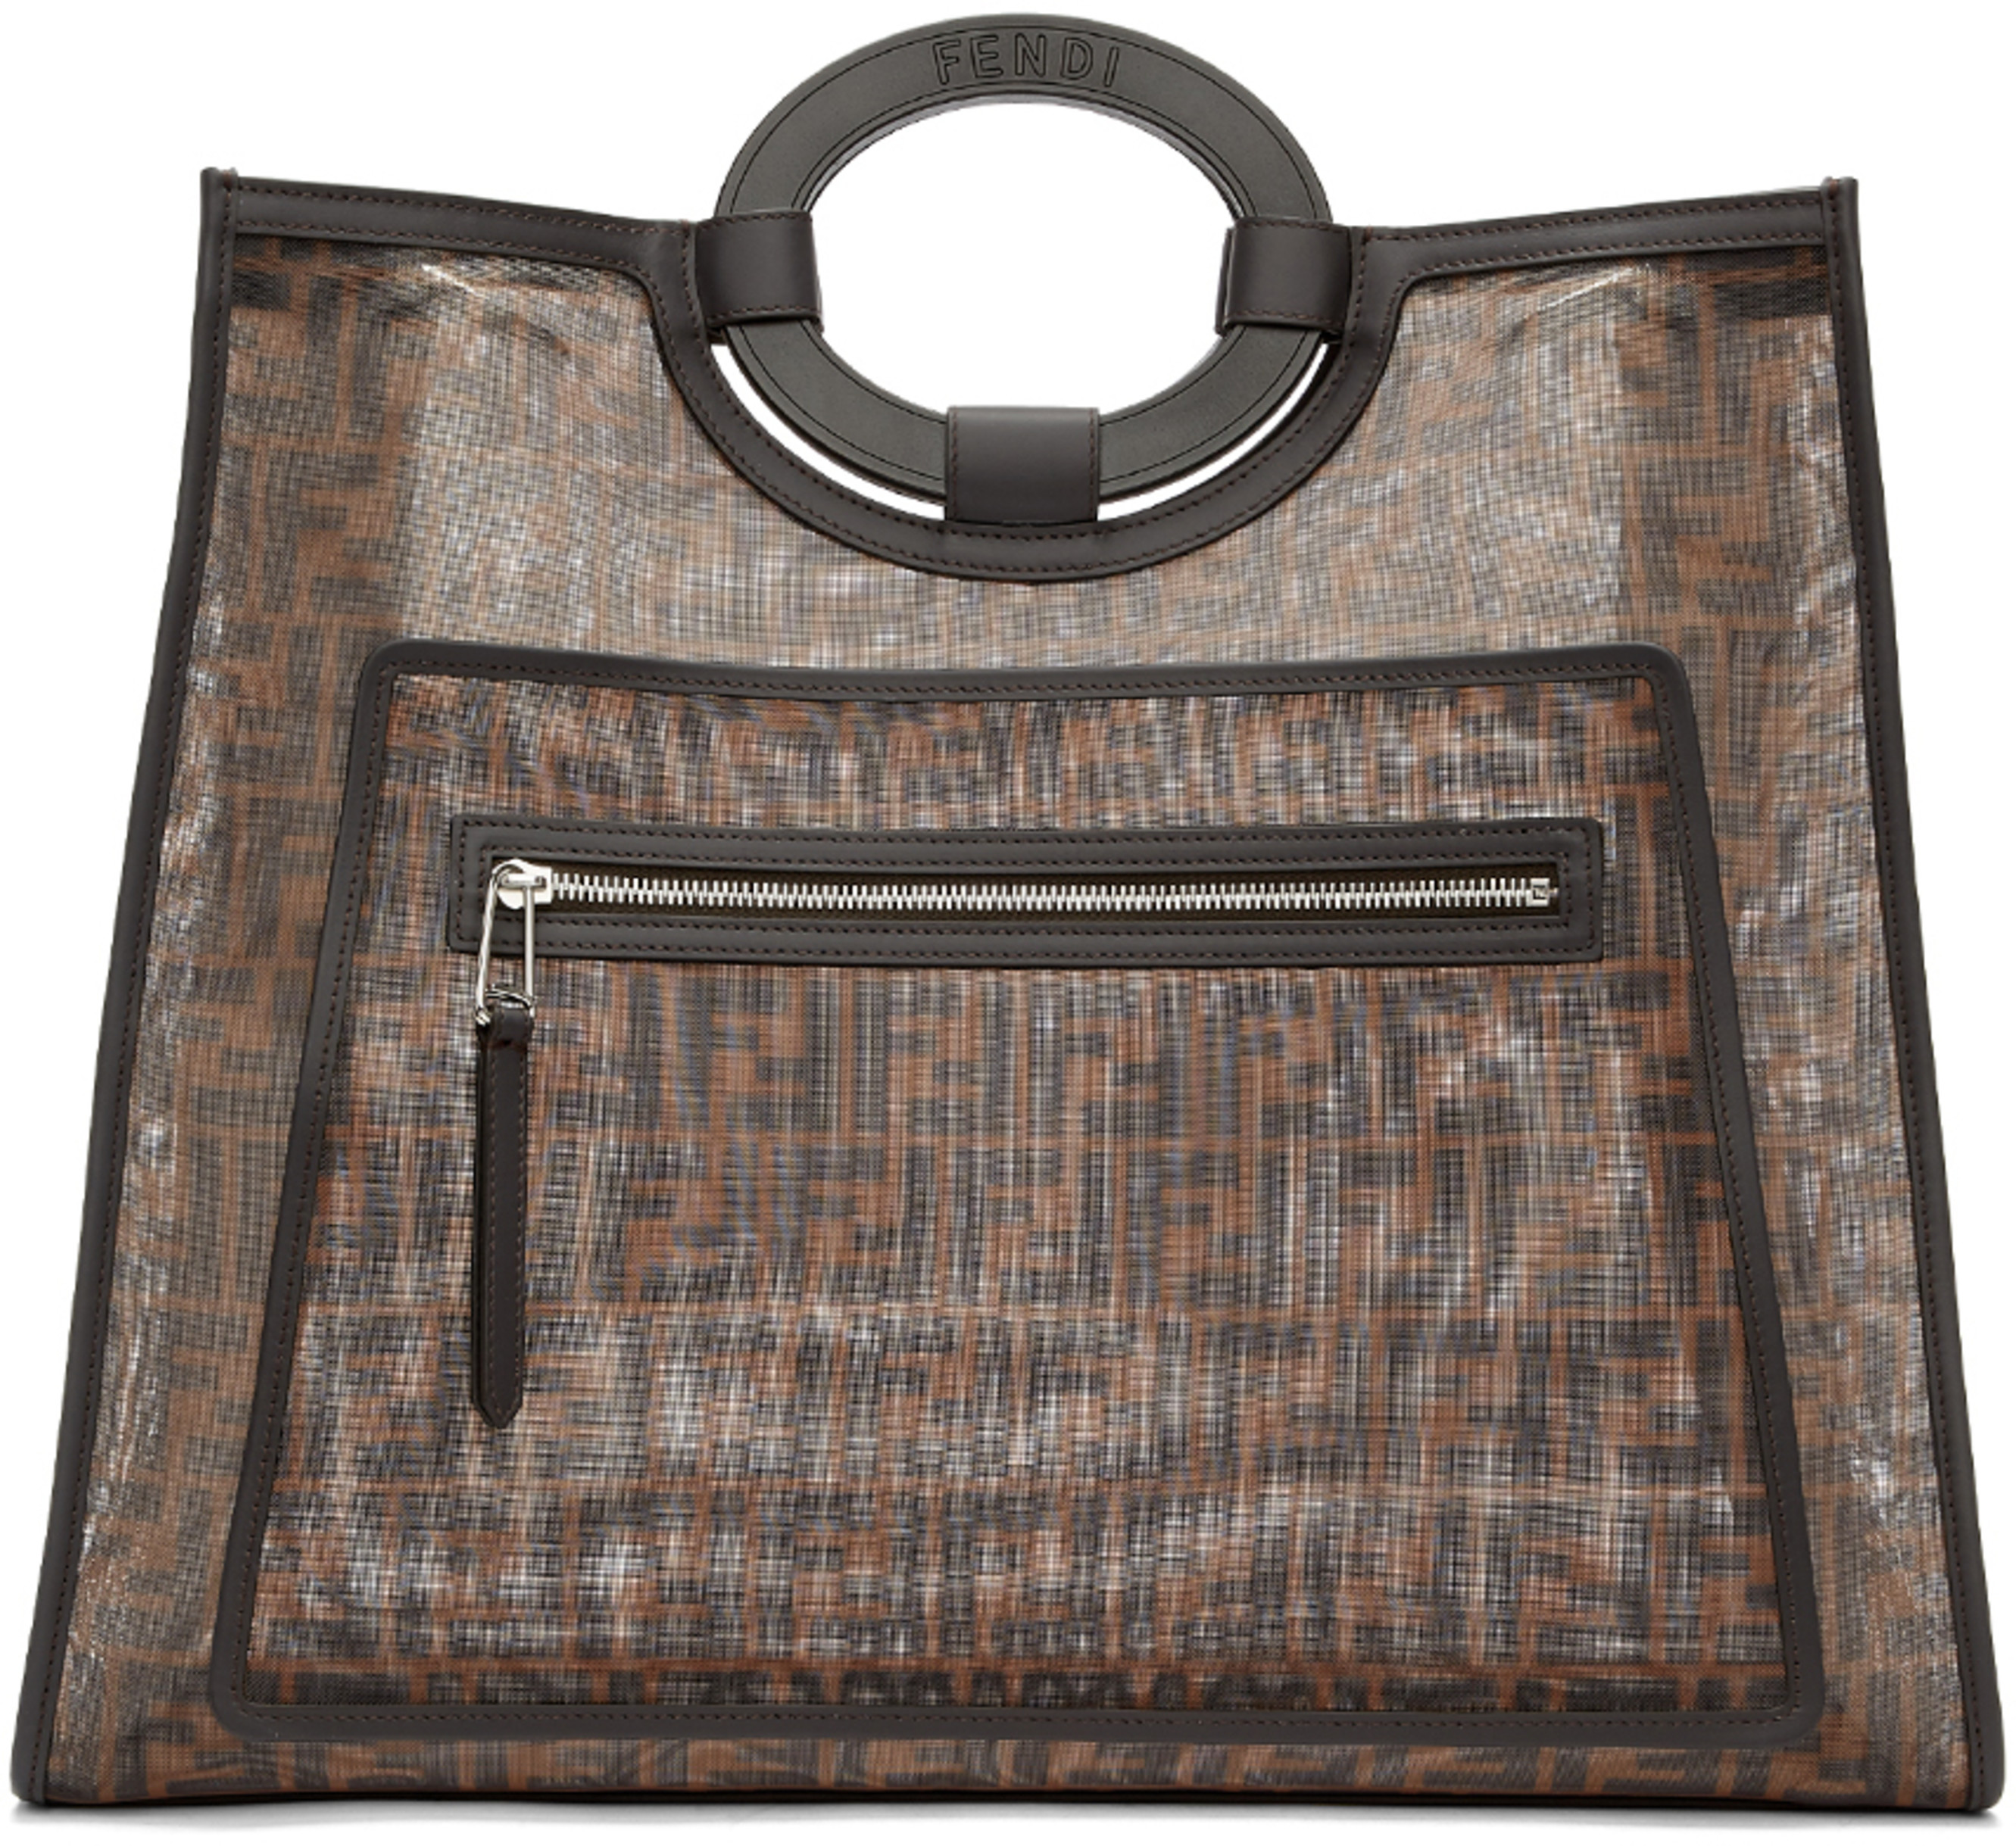 85c37f5b5755 Fendi bags for Women